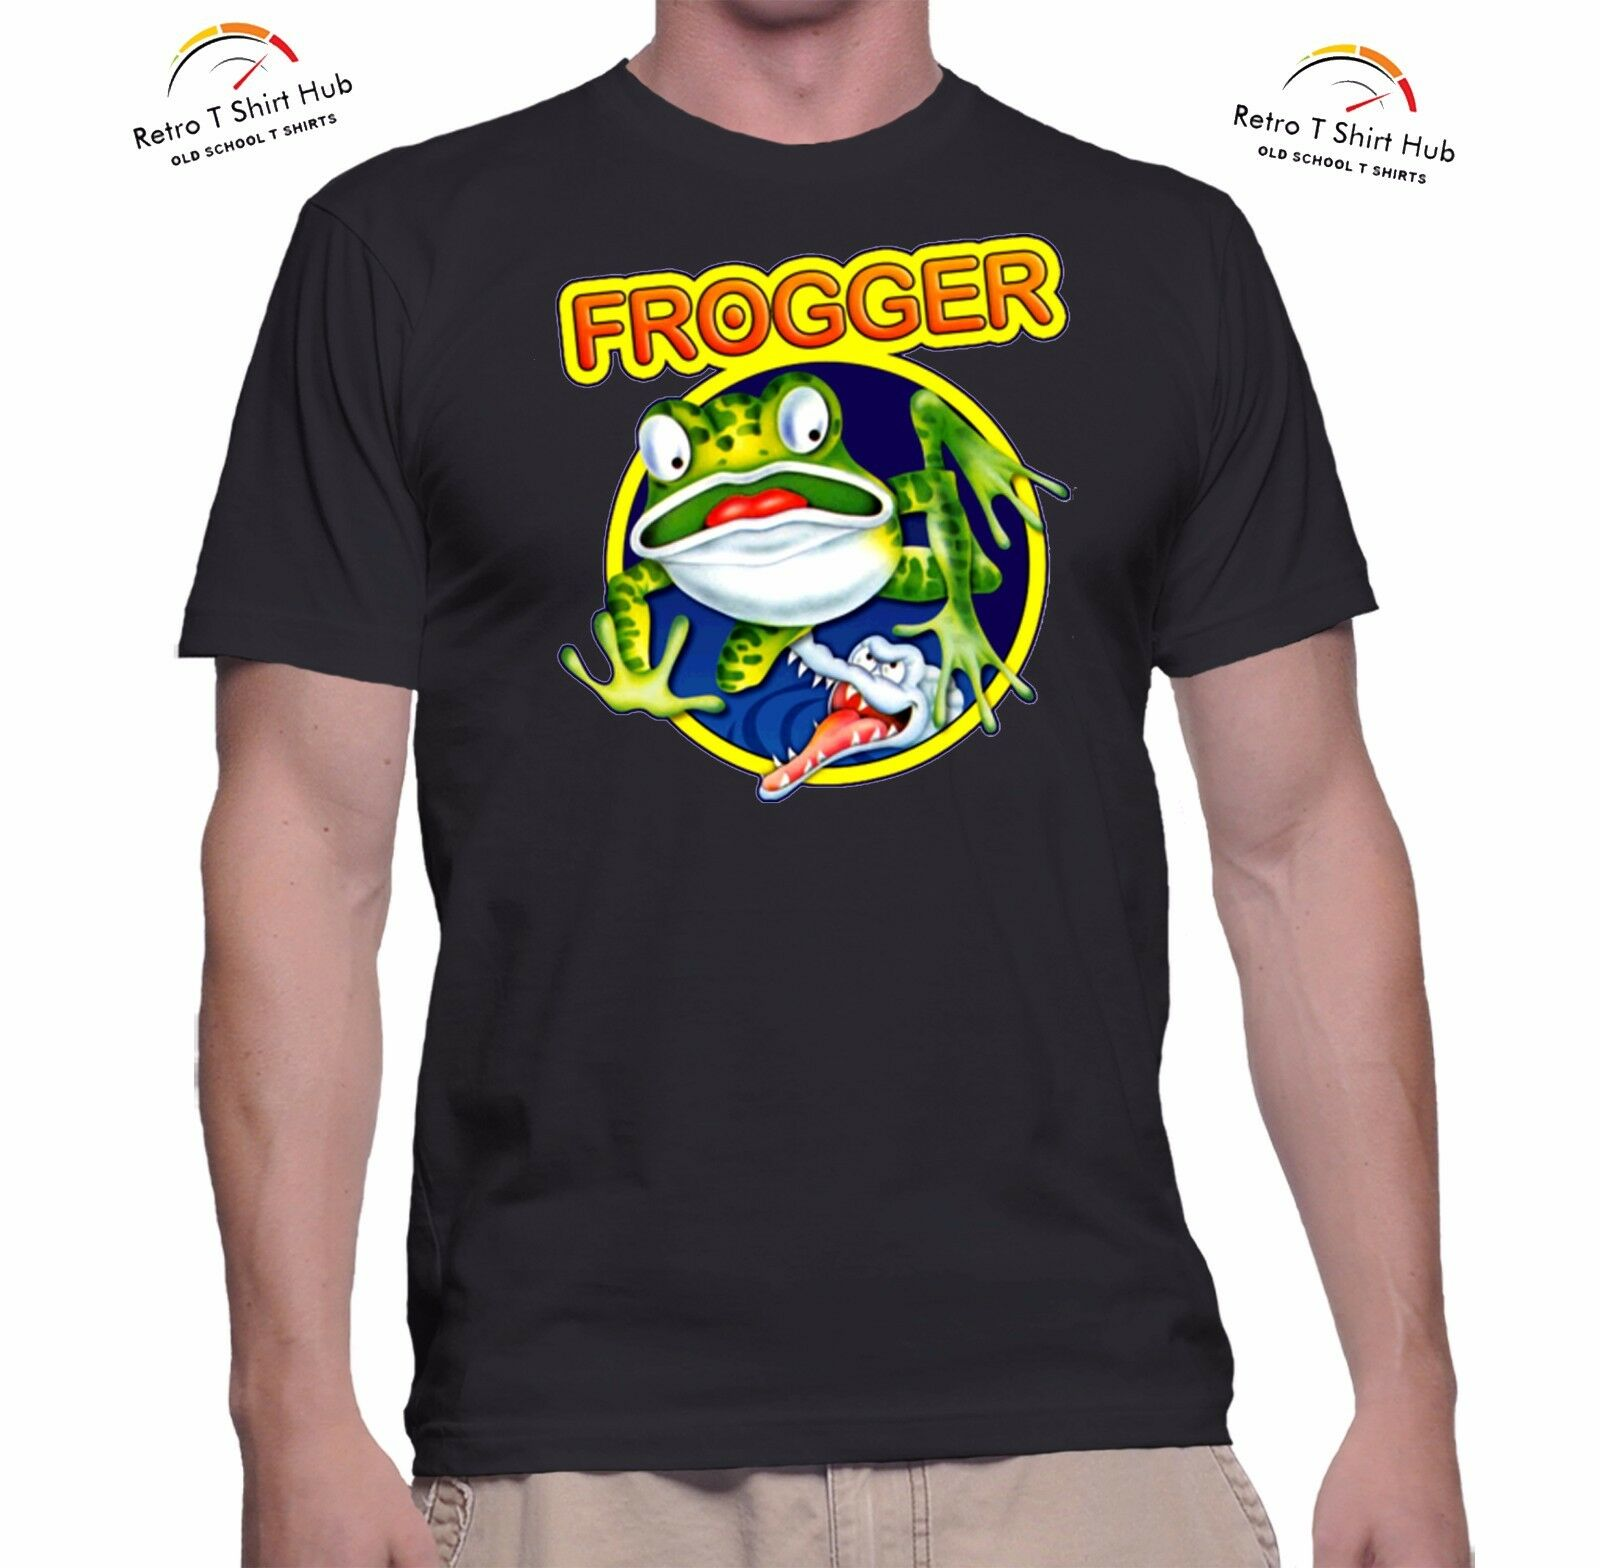 Frogger T-shirt for Men - Brand New - S to 2XL